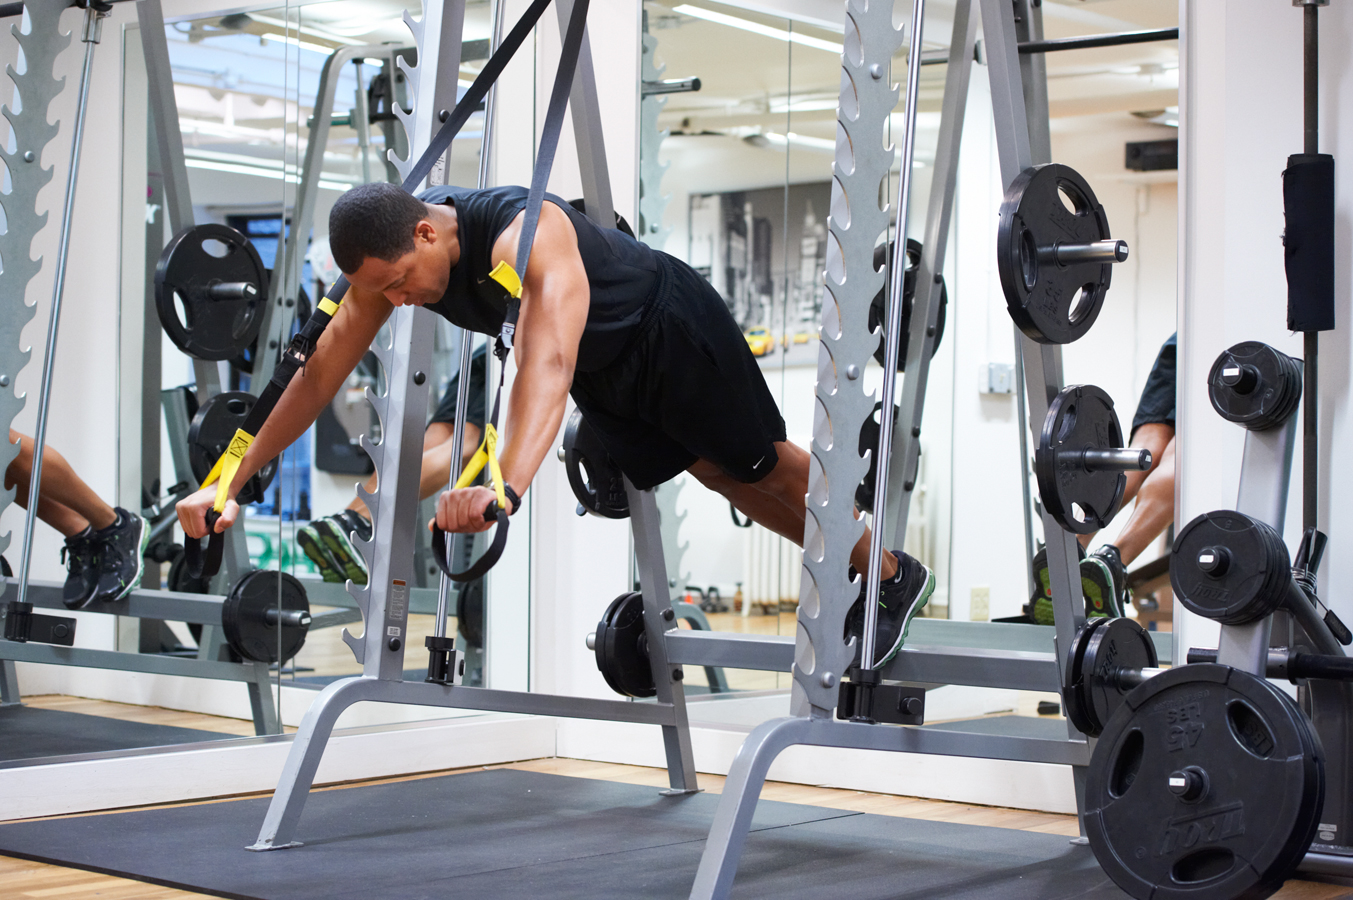 Why Trx Suspension Training Is Best For Full Body Workout